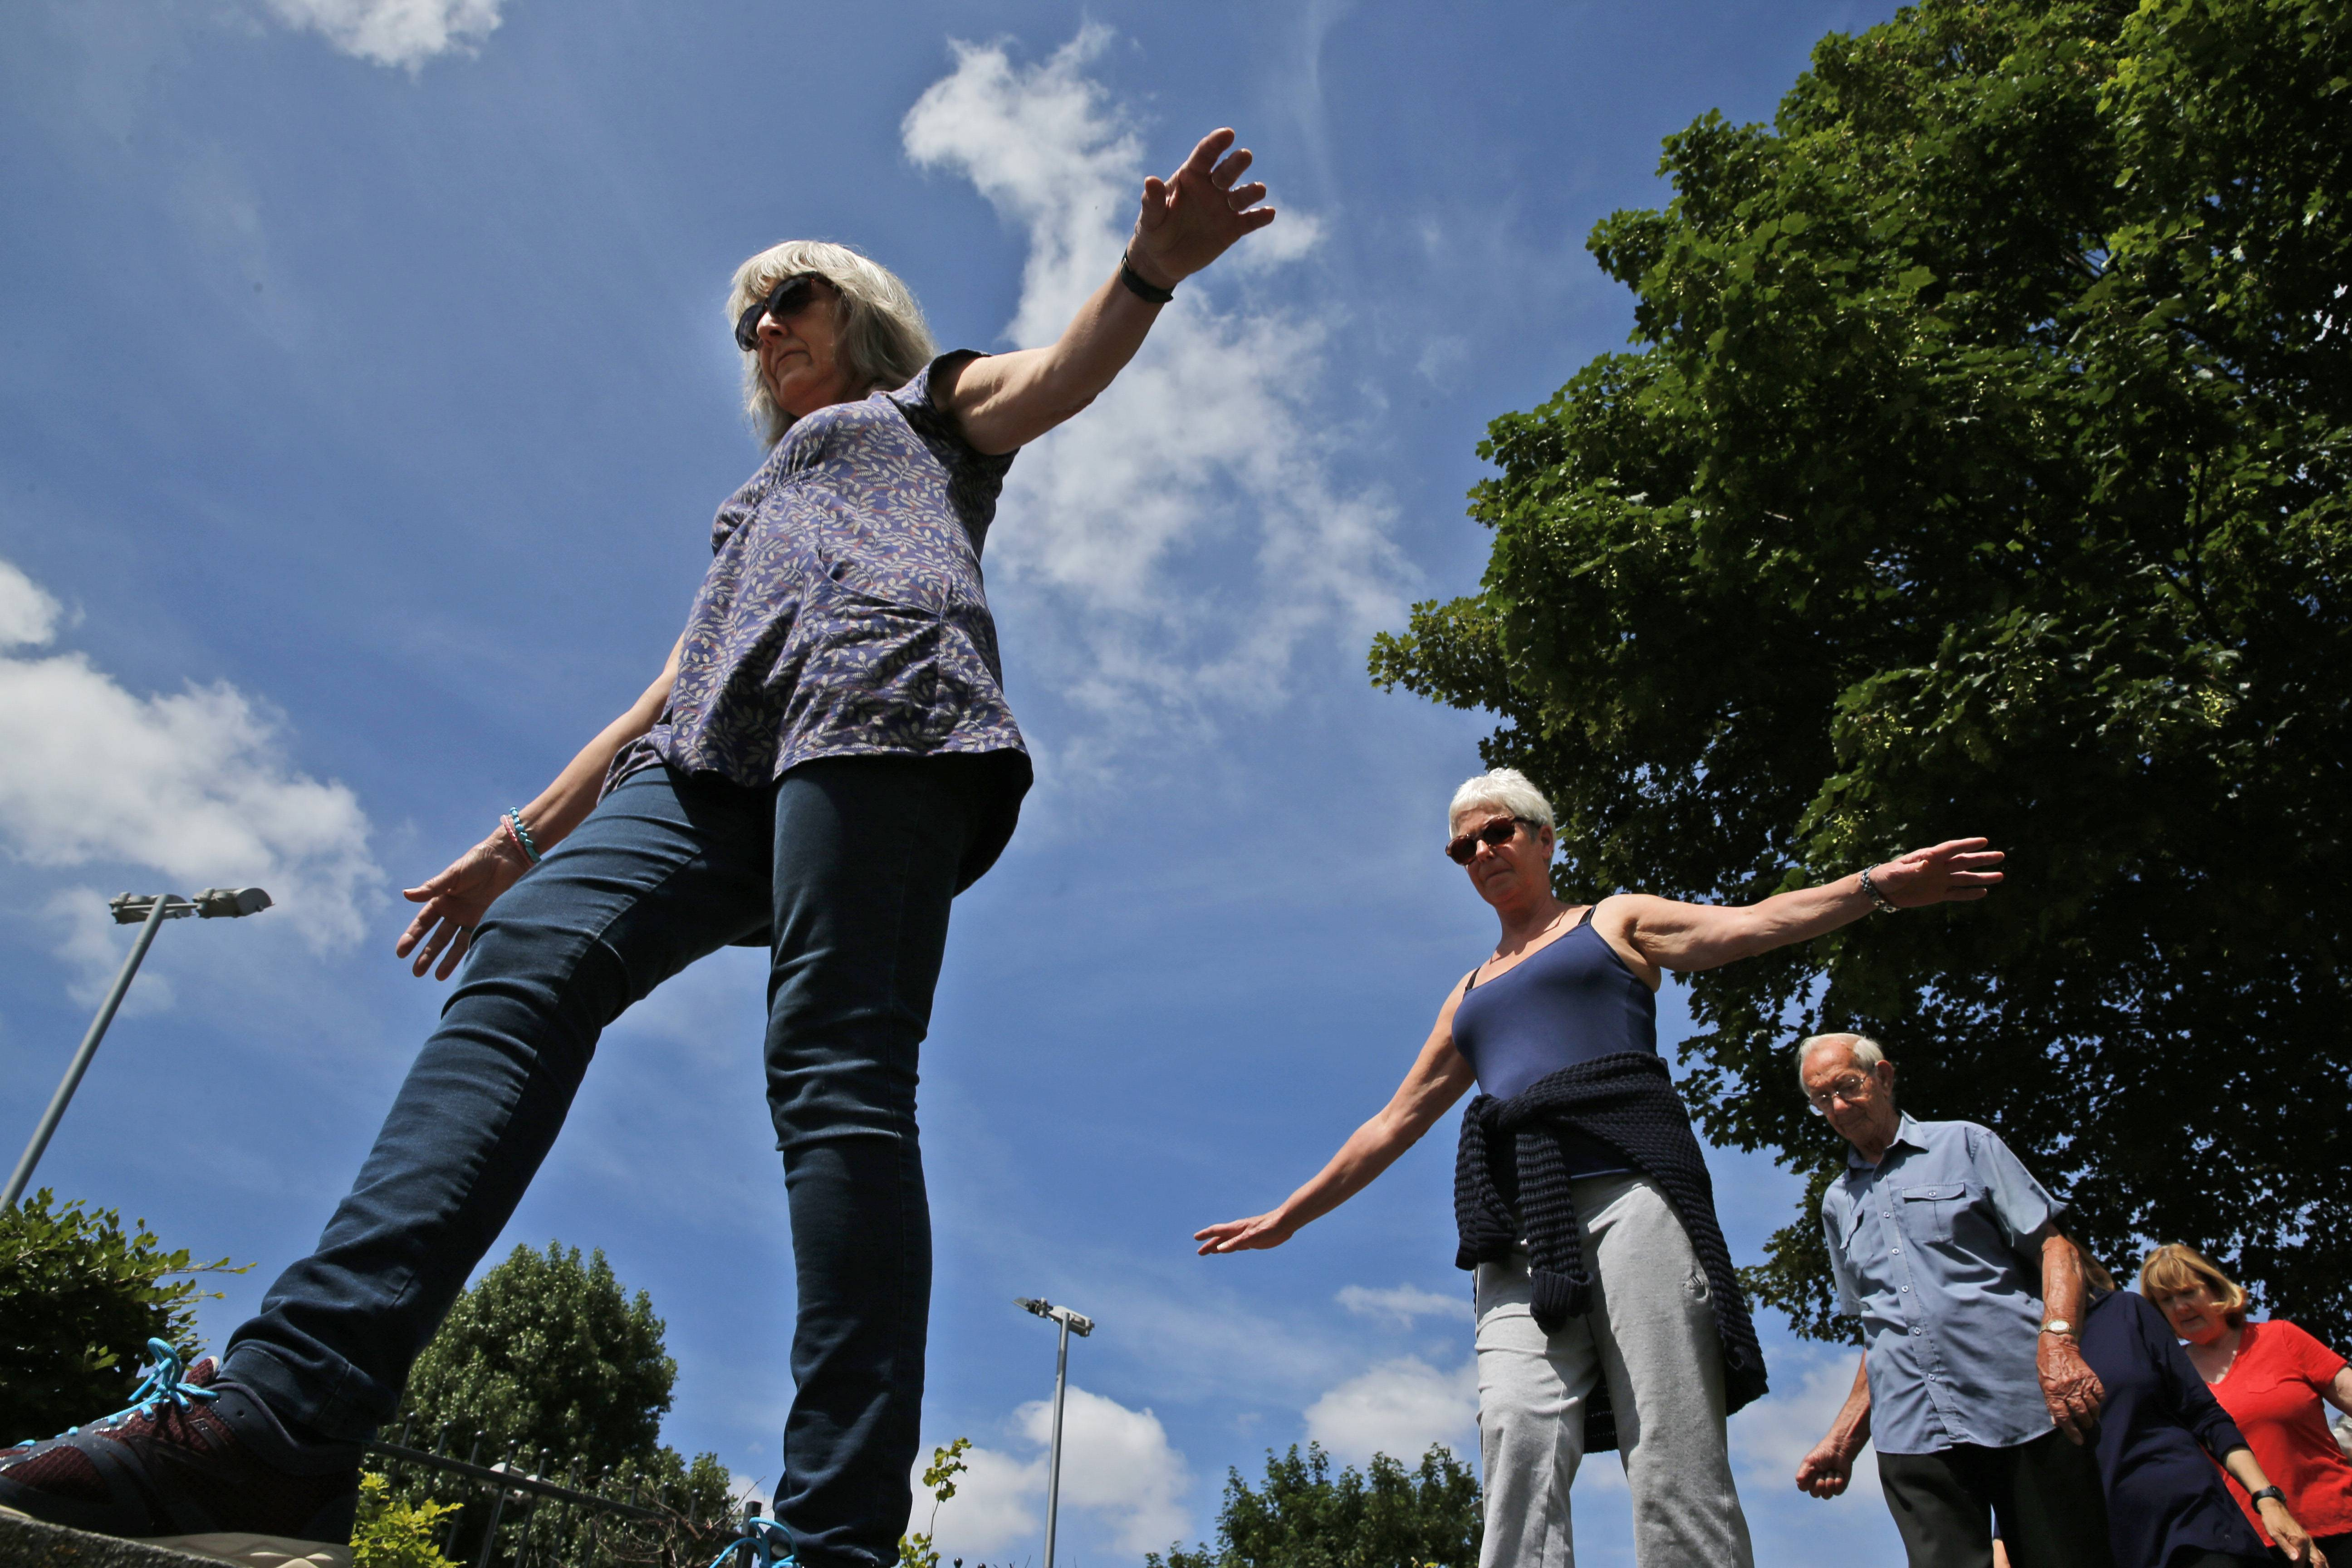 Participants take a unique weekly class for people age 60 and older called parkour, a flashy discipline usually known for its acrobatic running, climbing and gravity-defying jumps.